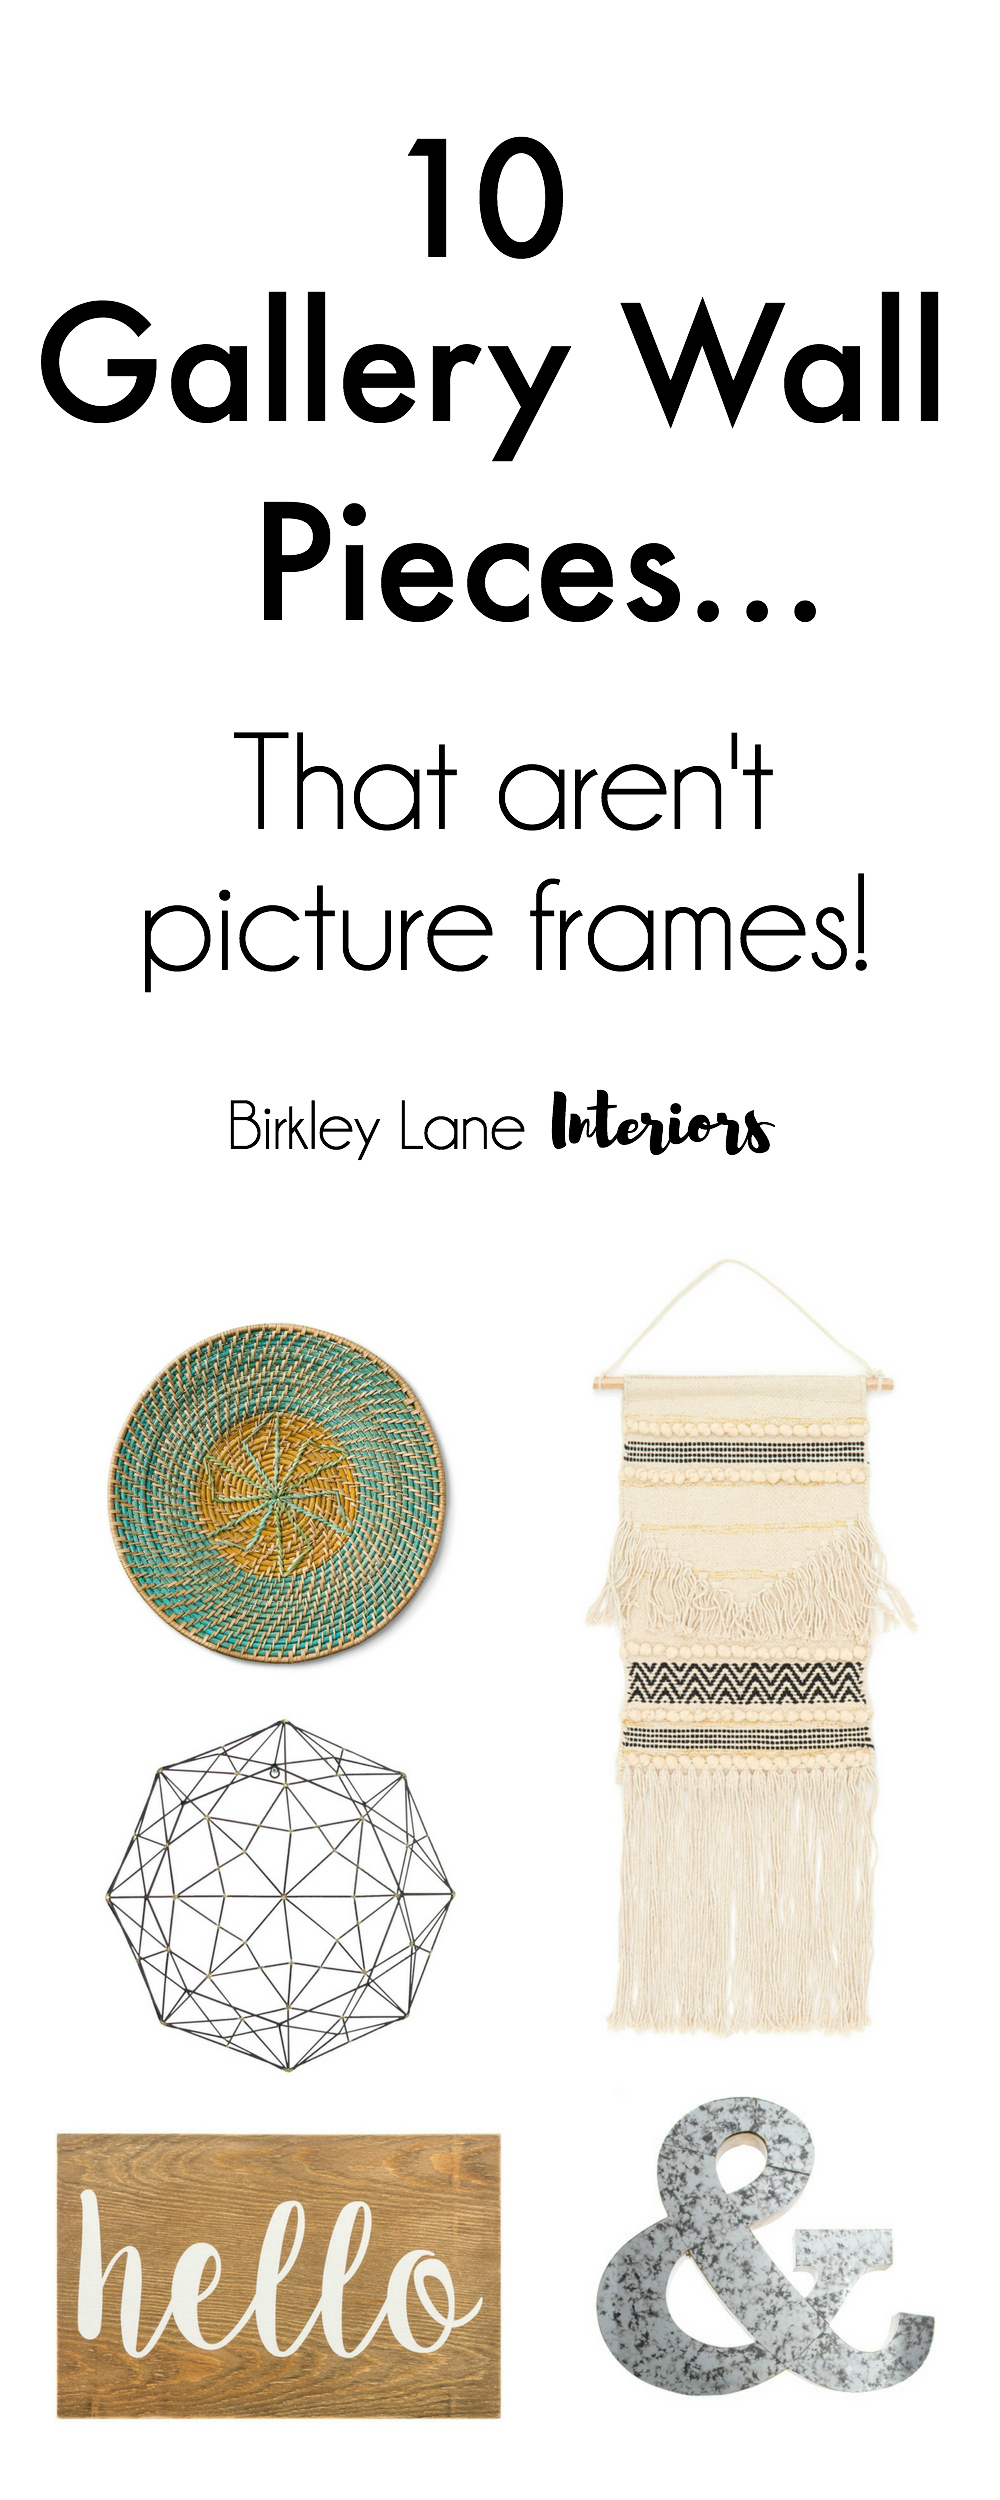 Change up your gallery wall with these 10 gallery wall pieces that aren't picture frames! They will add texture and dimension to your wall that you'll love!